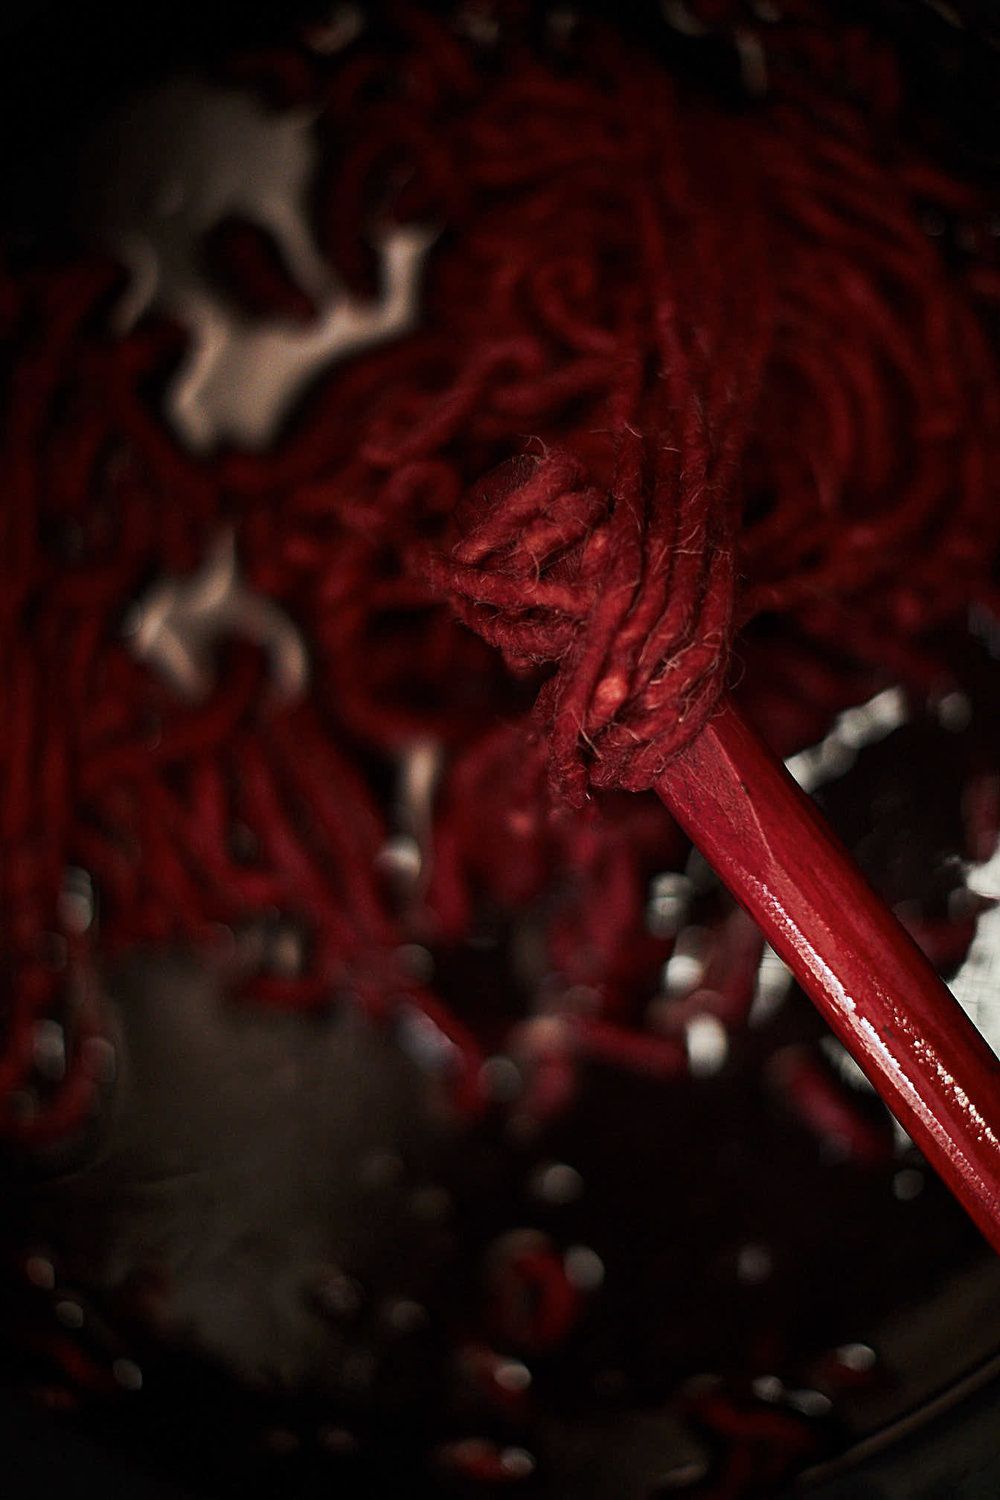 Madda Studio Cochineal Dye being used in the natural dye process in Mexico